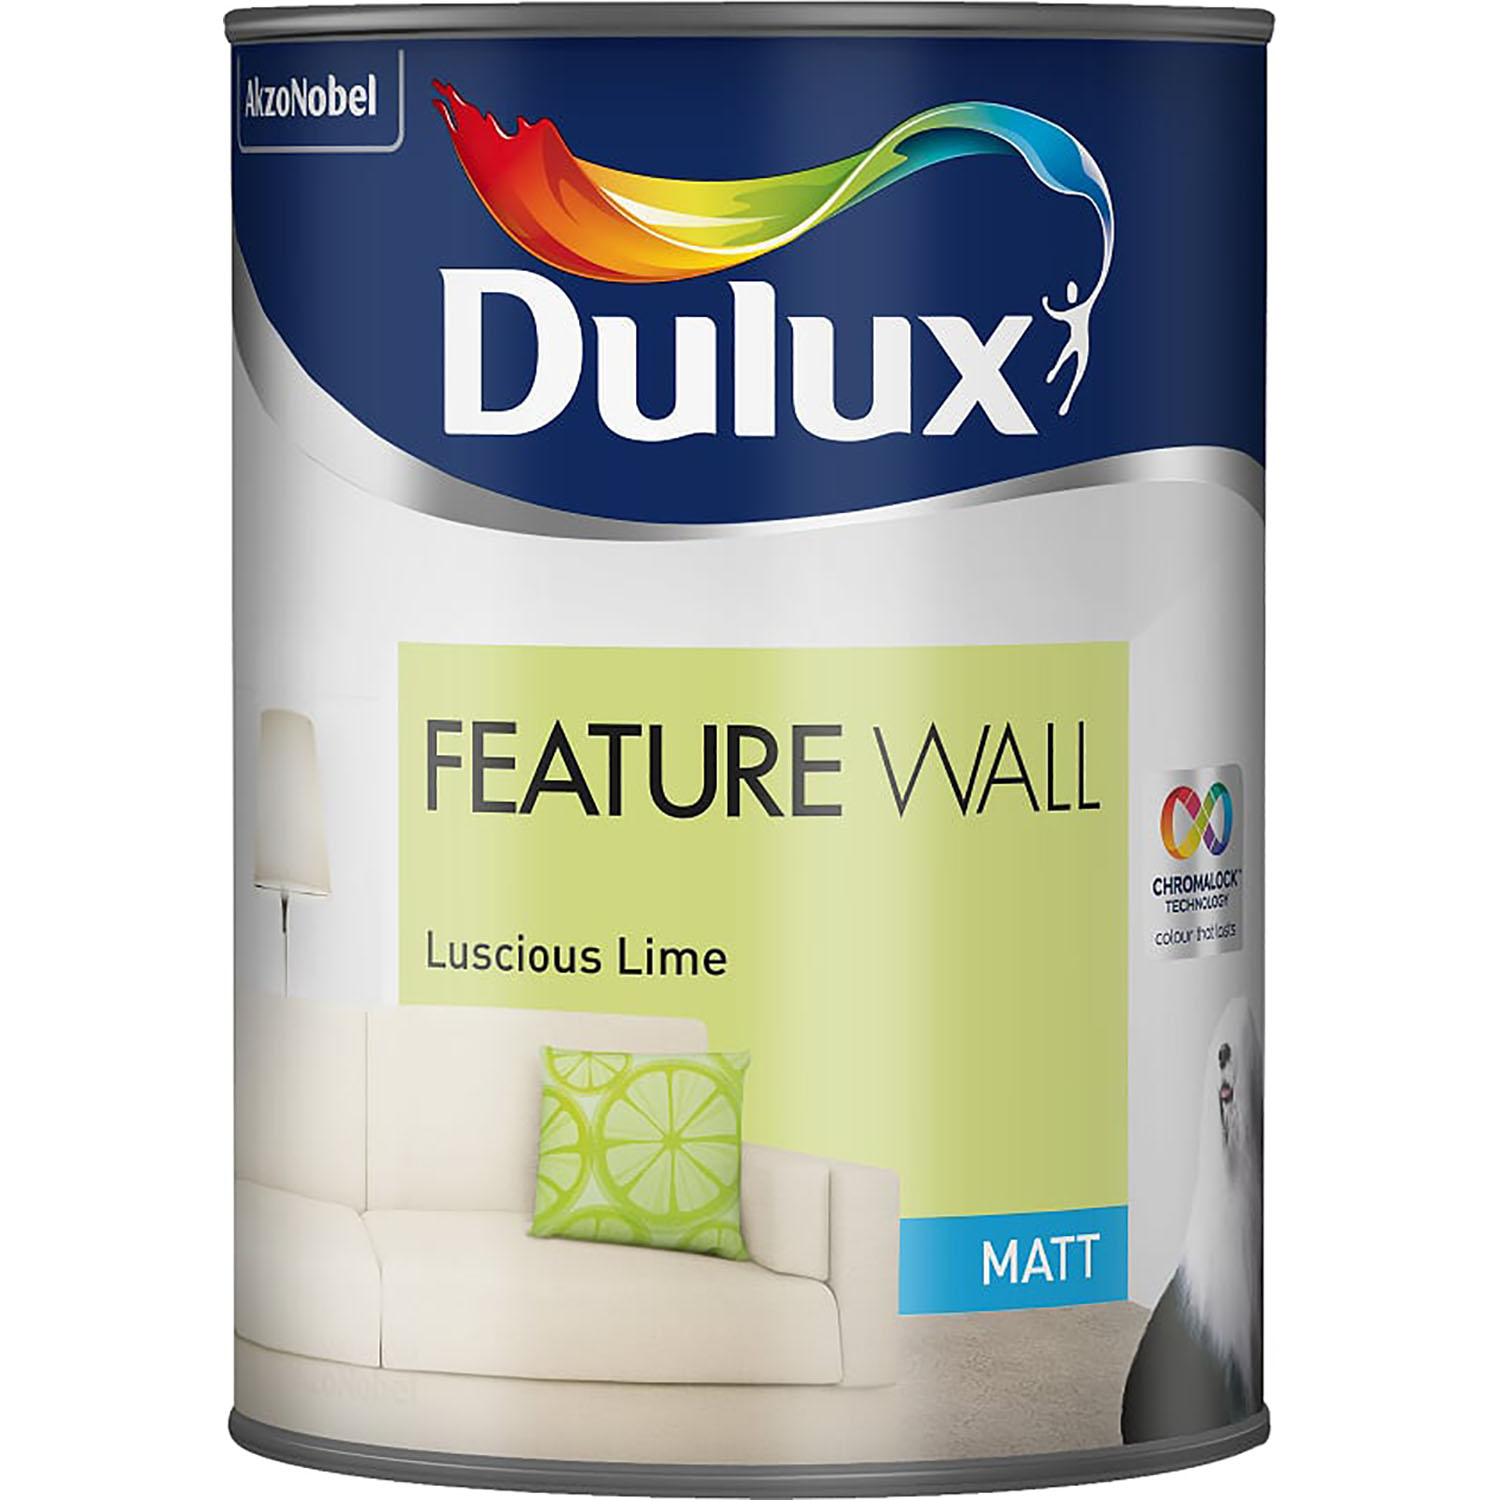 Image of Dulux 1.25L Feature Wall Matt Emulsion Paint, Luscious Lime